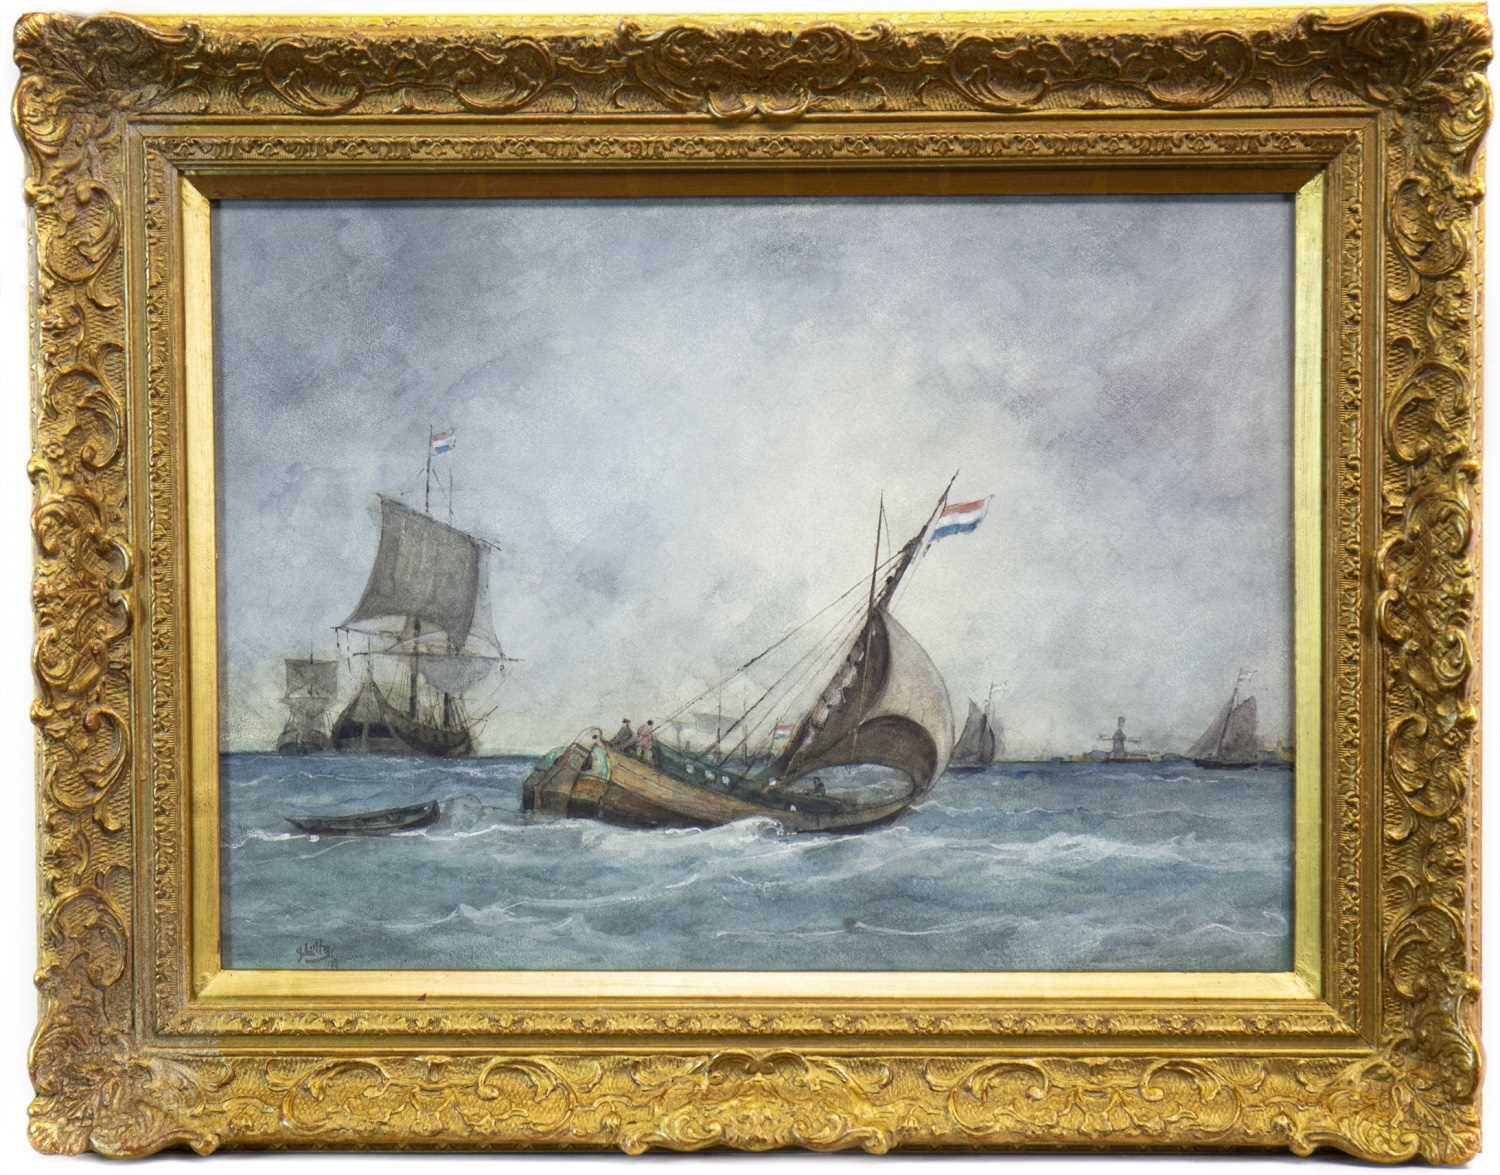 Lot 418-SAILBOATS OFFSHORE IN ROUGH SEAS